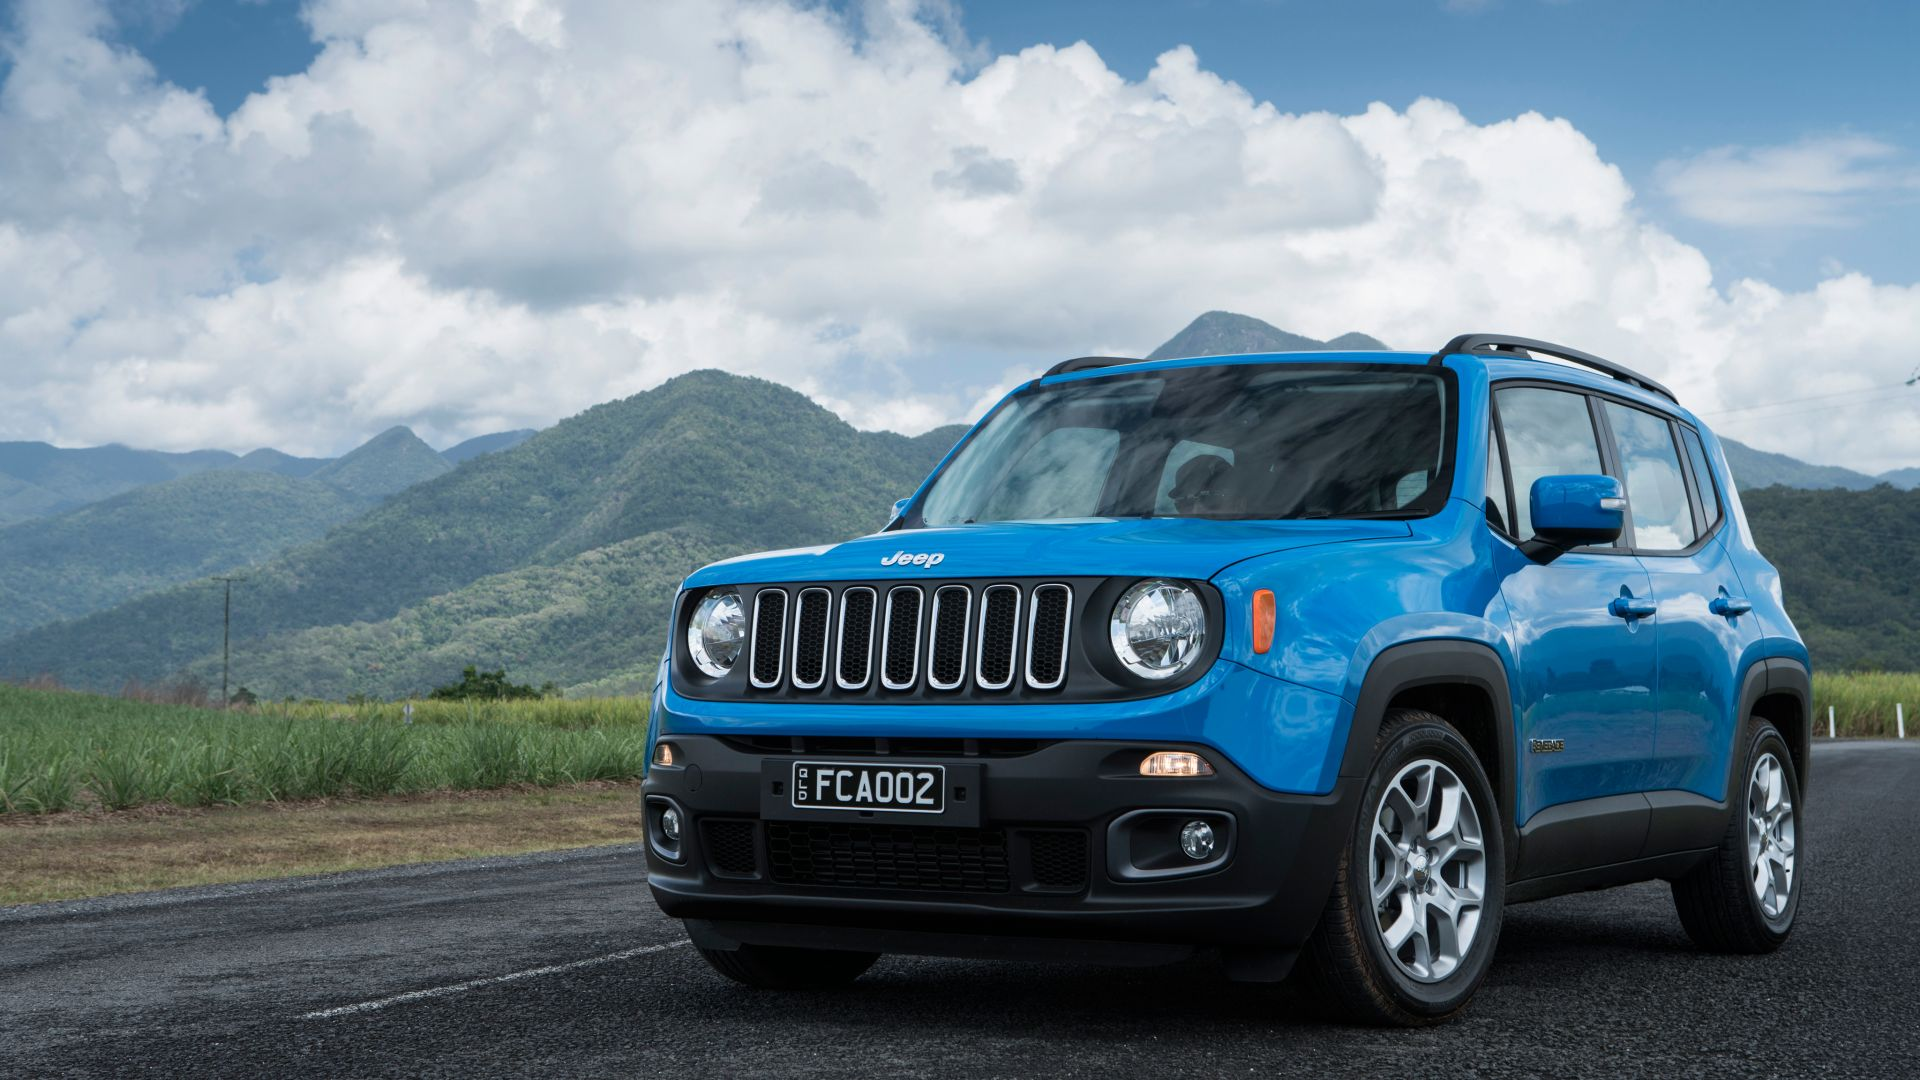 Jeep Renegade Longitude, blue, SUV (horizontal)